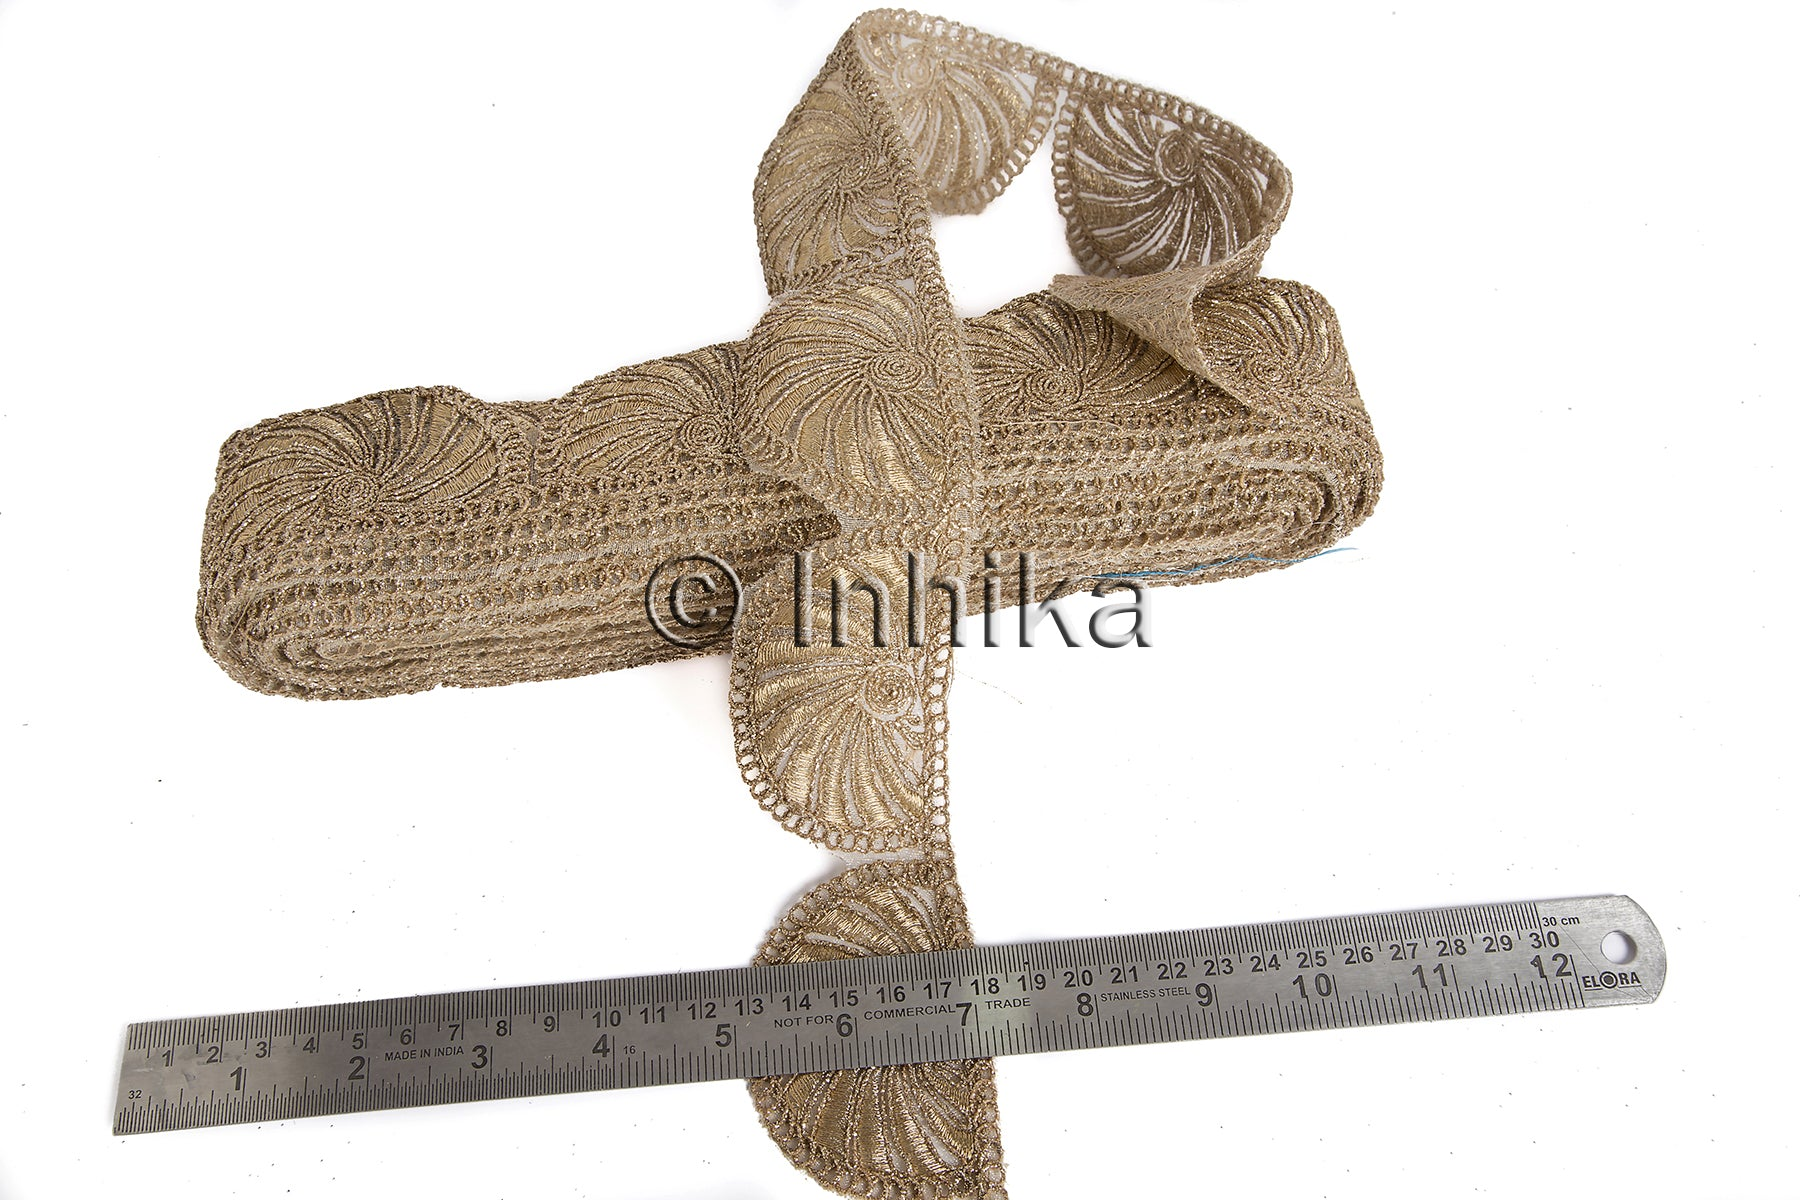 Copper Embroidered Scallop Lace | Net Mesh Base | 2 inch wide| 9 Yard Trim Roll - Inhika.com